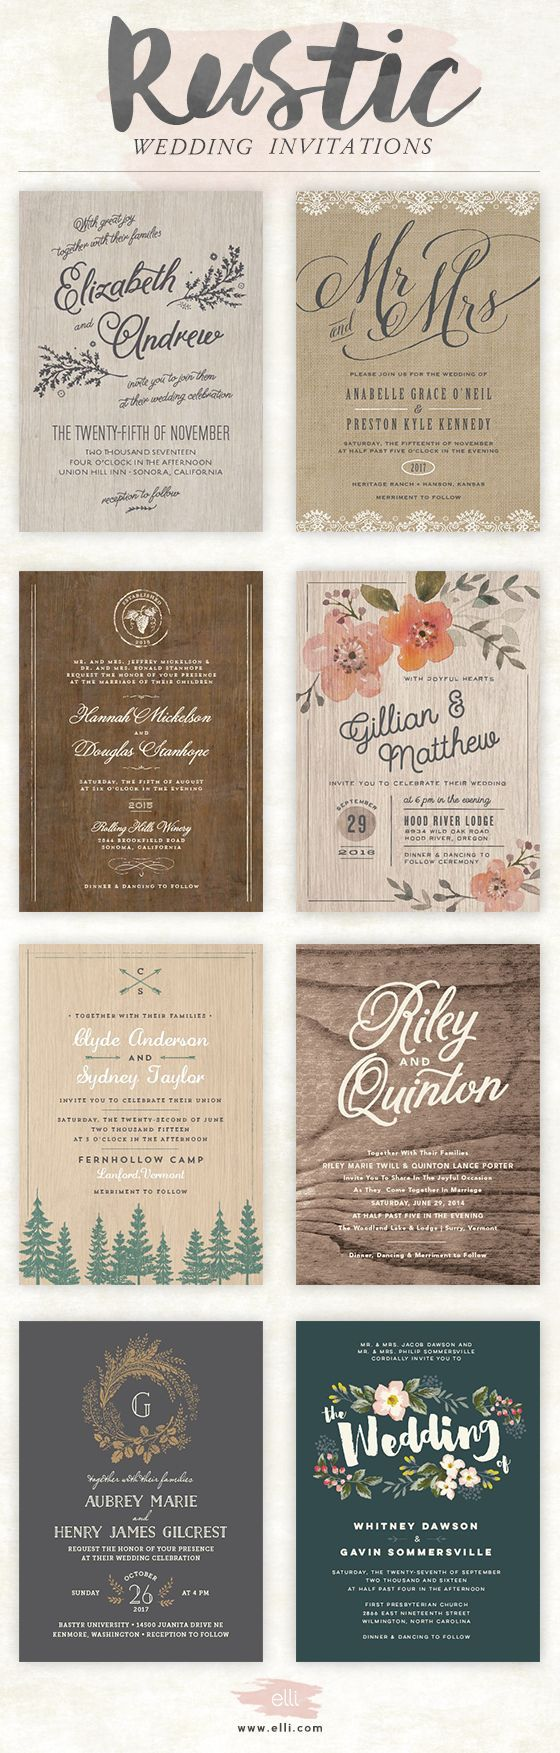 sample of wedding invitation letter%0A Rustic wedding invitations   bellacollina com   Bella Collina Weddings